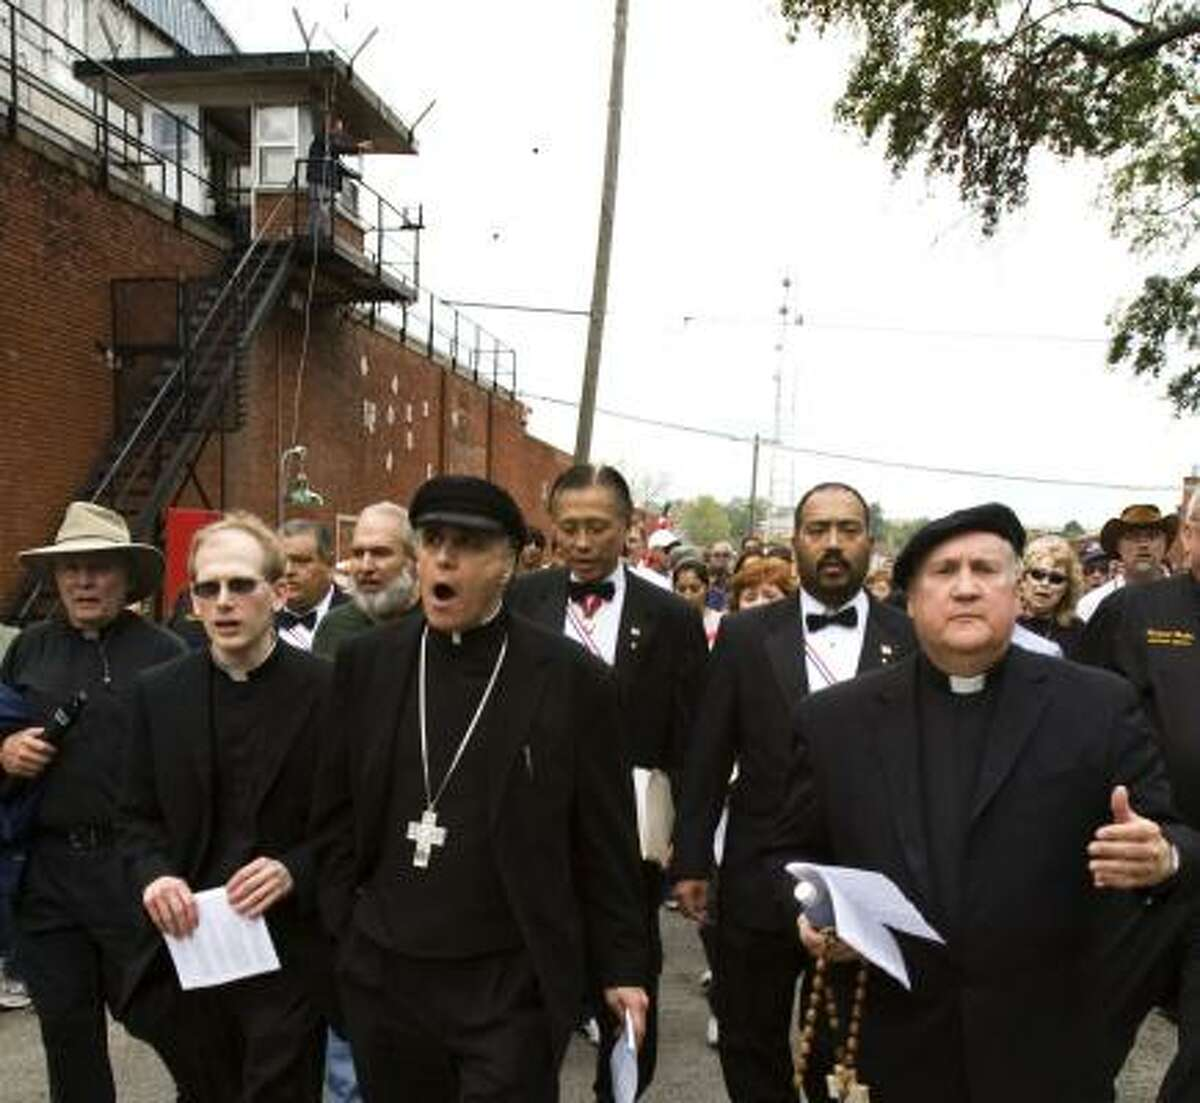 Cardinal Daniel DiNardo, center, leads marchers from Huntsville's Planned Parenthood to the Walls Unit on Monday.